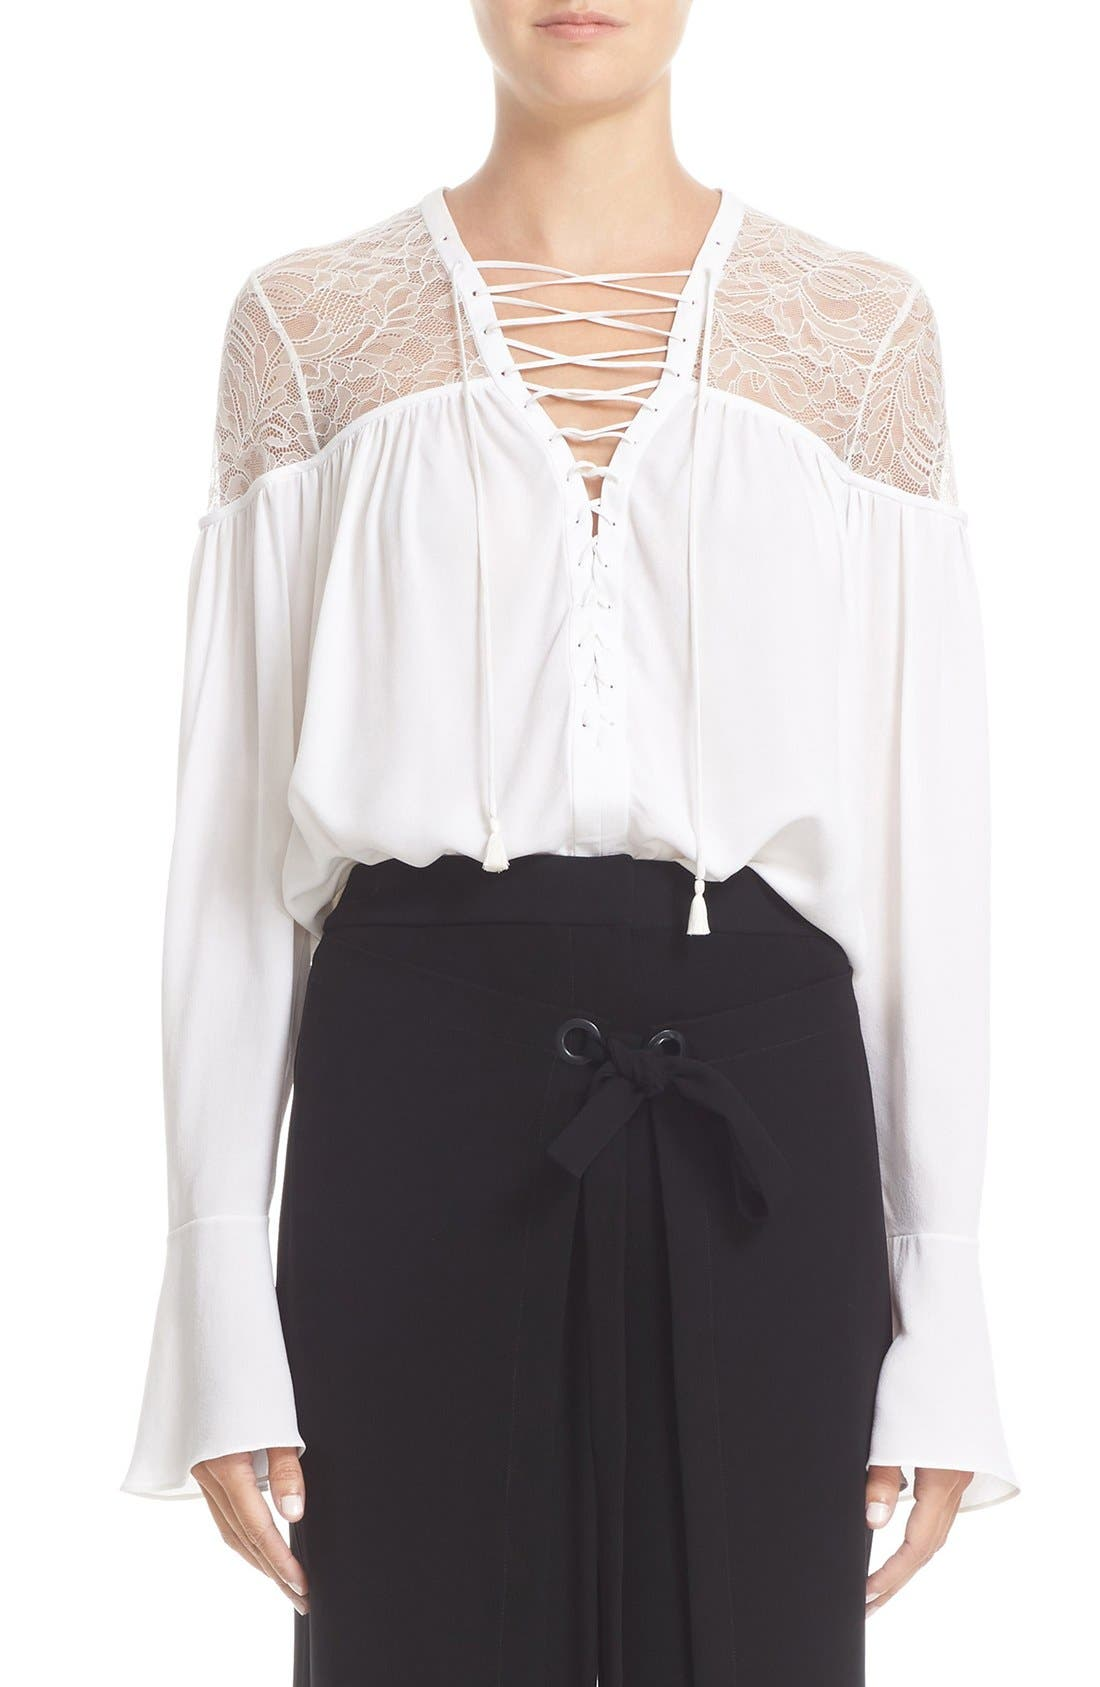 Alternate Image 1 Selected - Yigal Azrouël Lace-Up Ruched Crepe Georgette Blouse